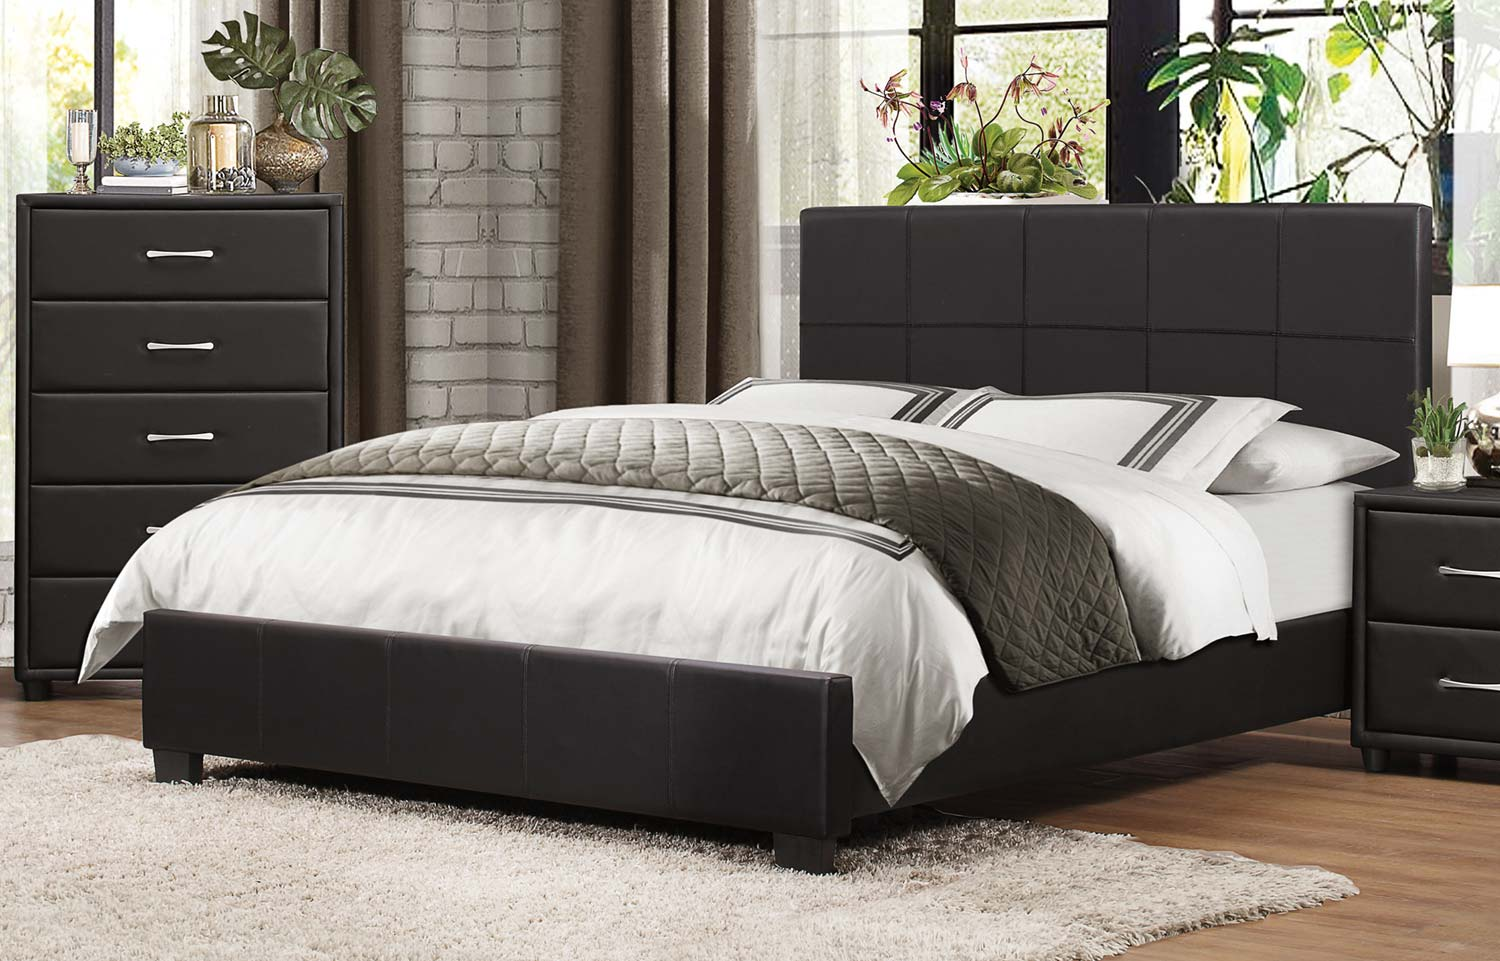 Homelegance Lorenzi Upholstered Platform Bed - Black Vinyl